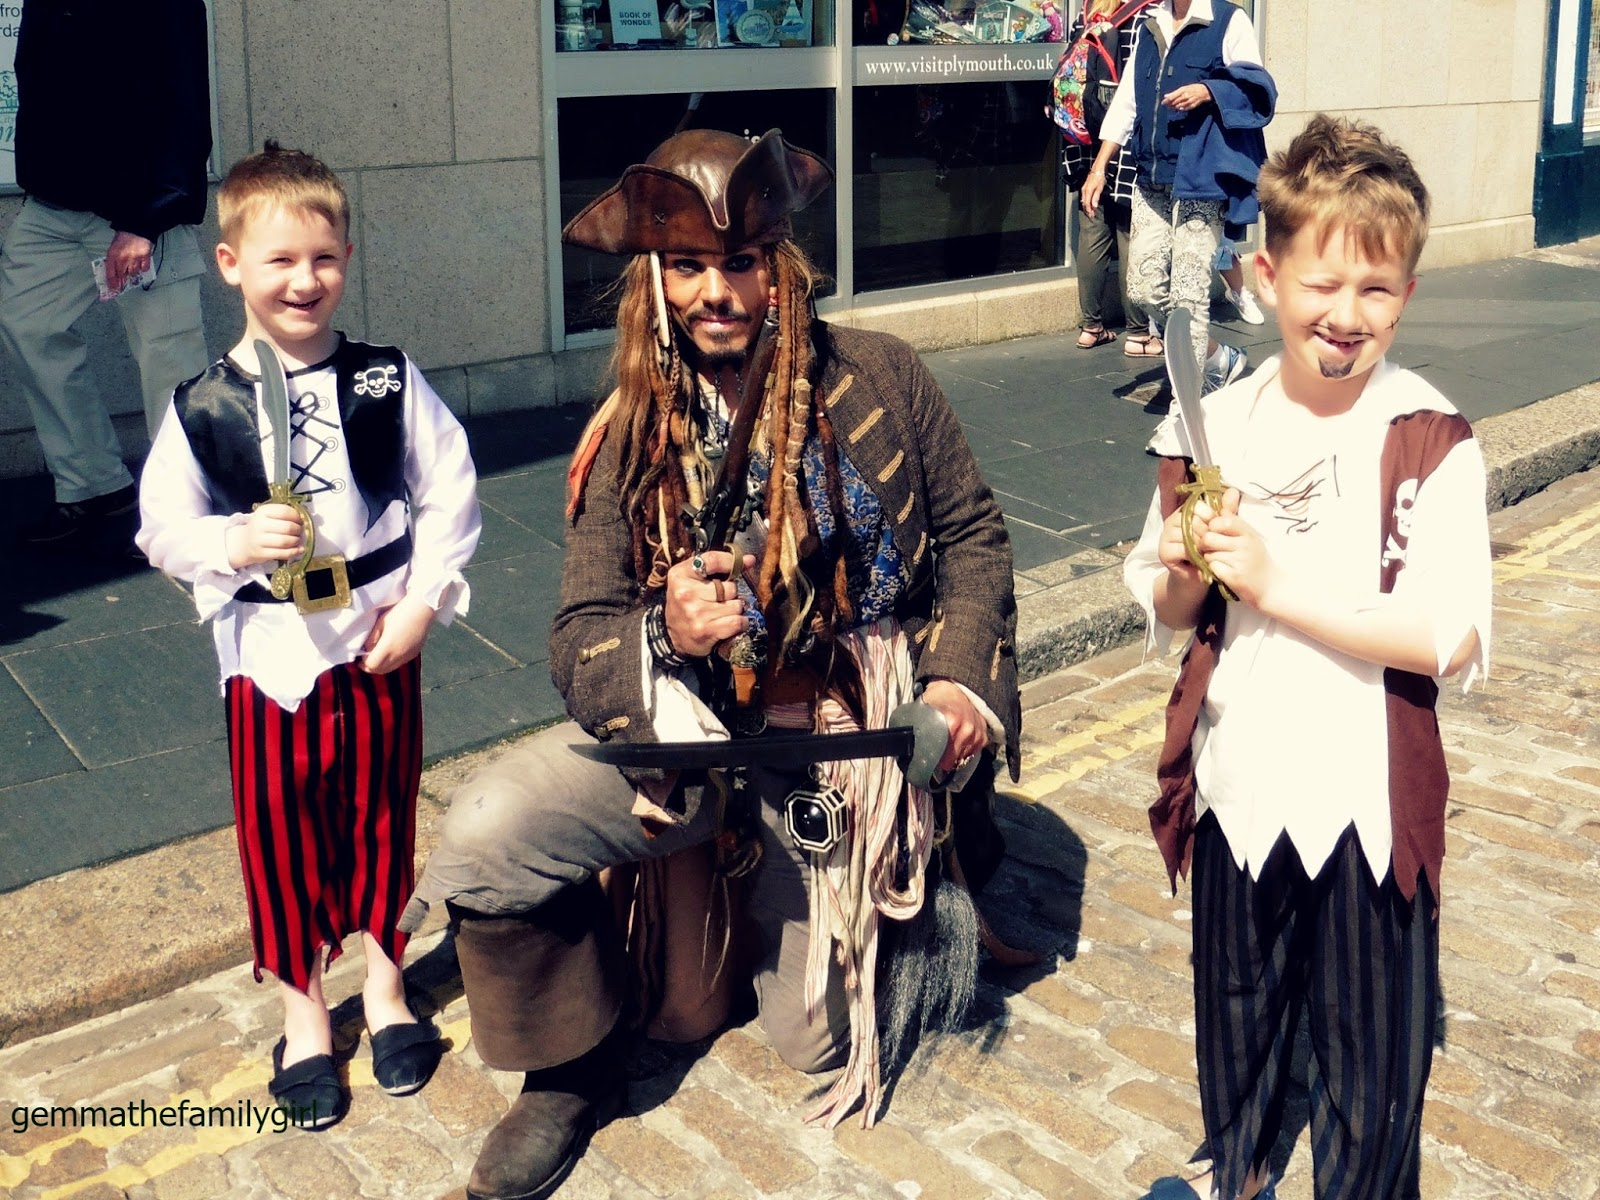 captain, jack, sparrow, cosplay, jonty, depp, dress up, fancy dress, pirate, weekend, plymouth, sutton harbour, blogger,